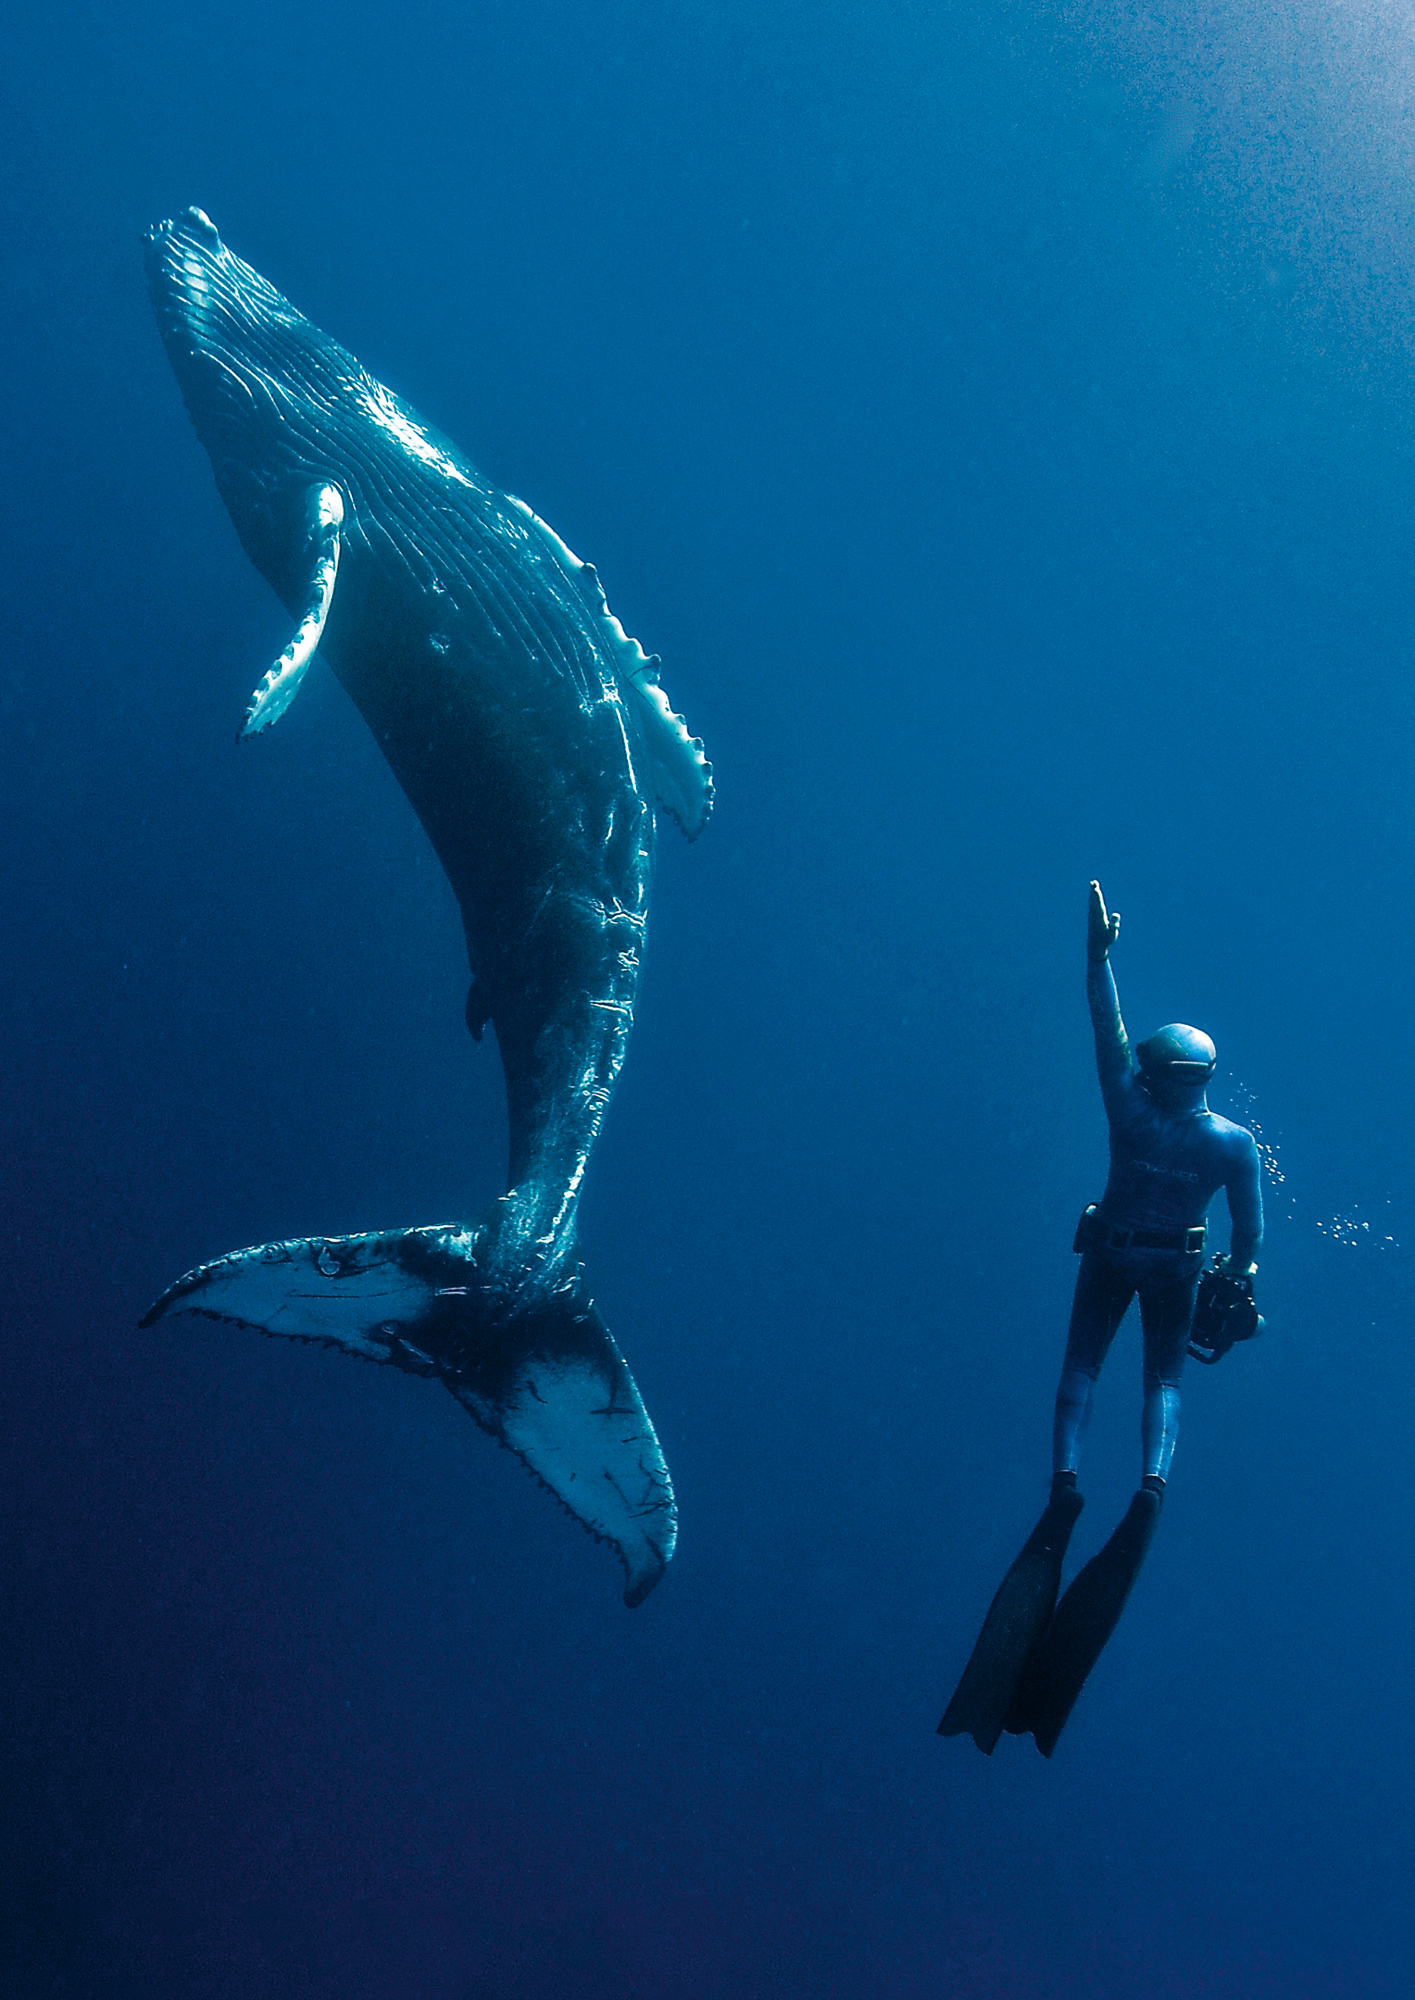 Humpbacks migrate to warmer water to breed